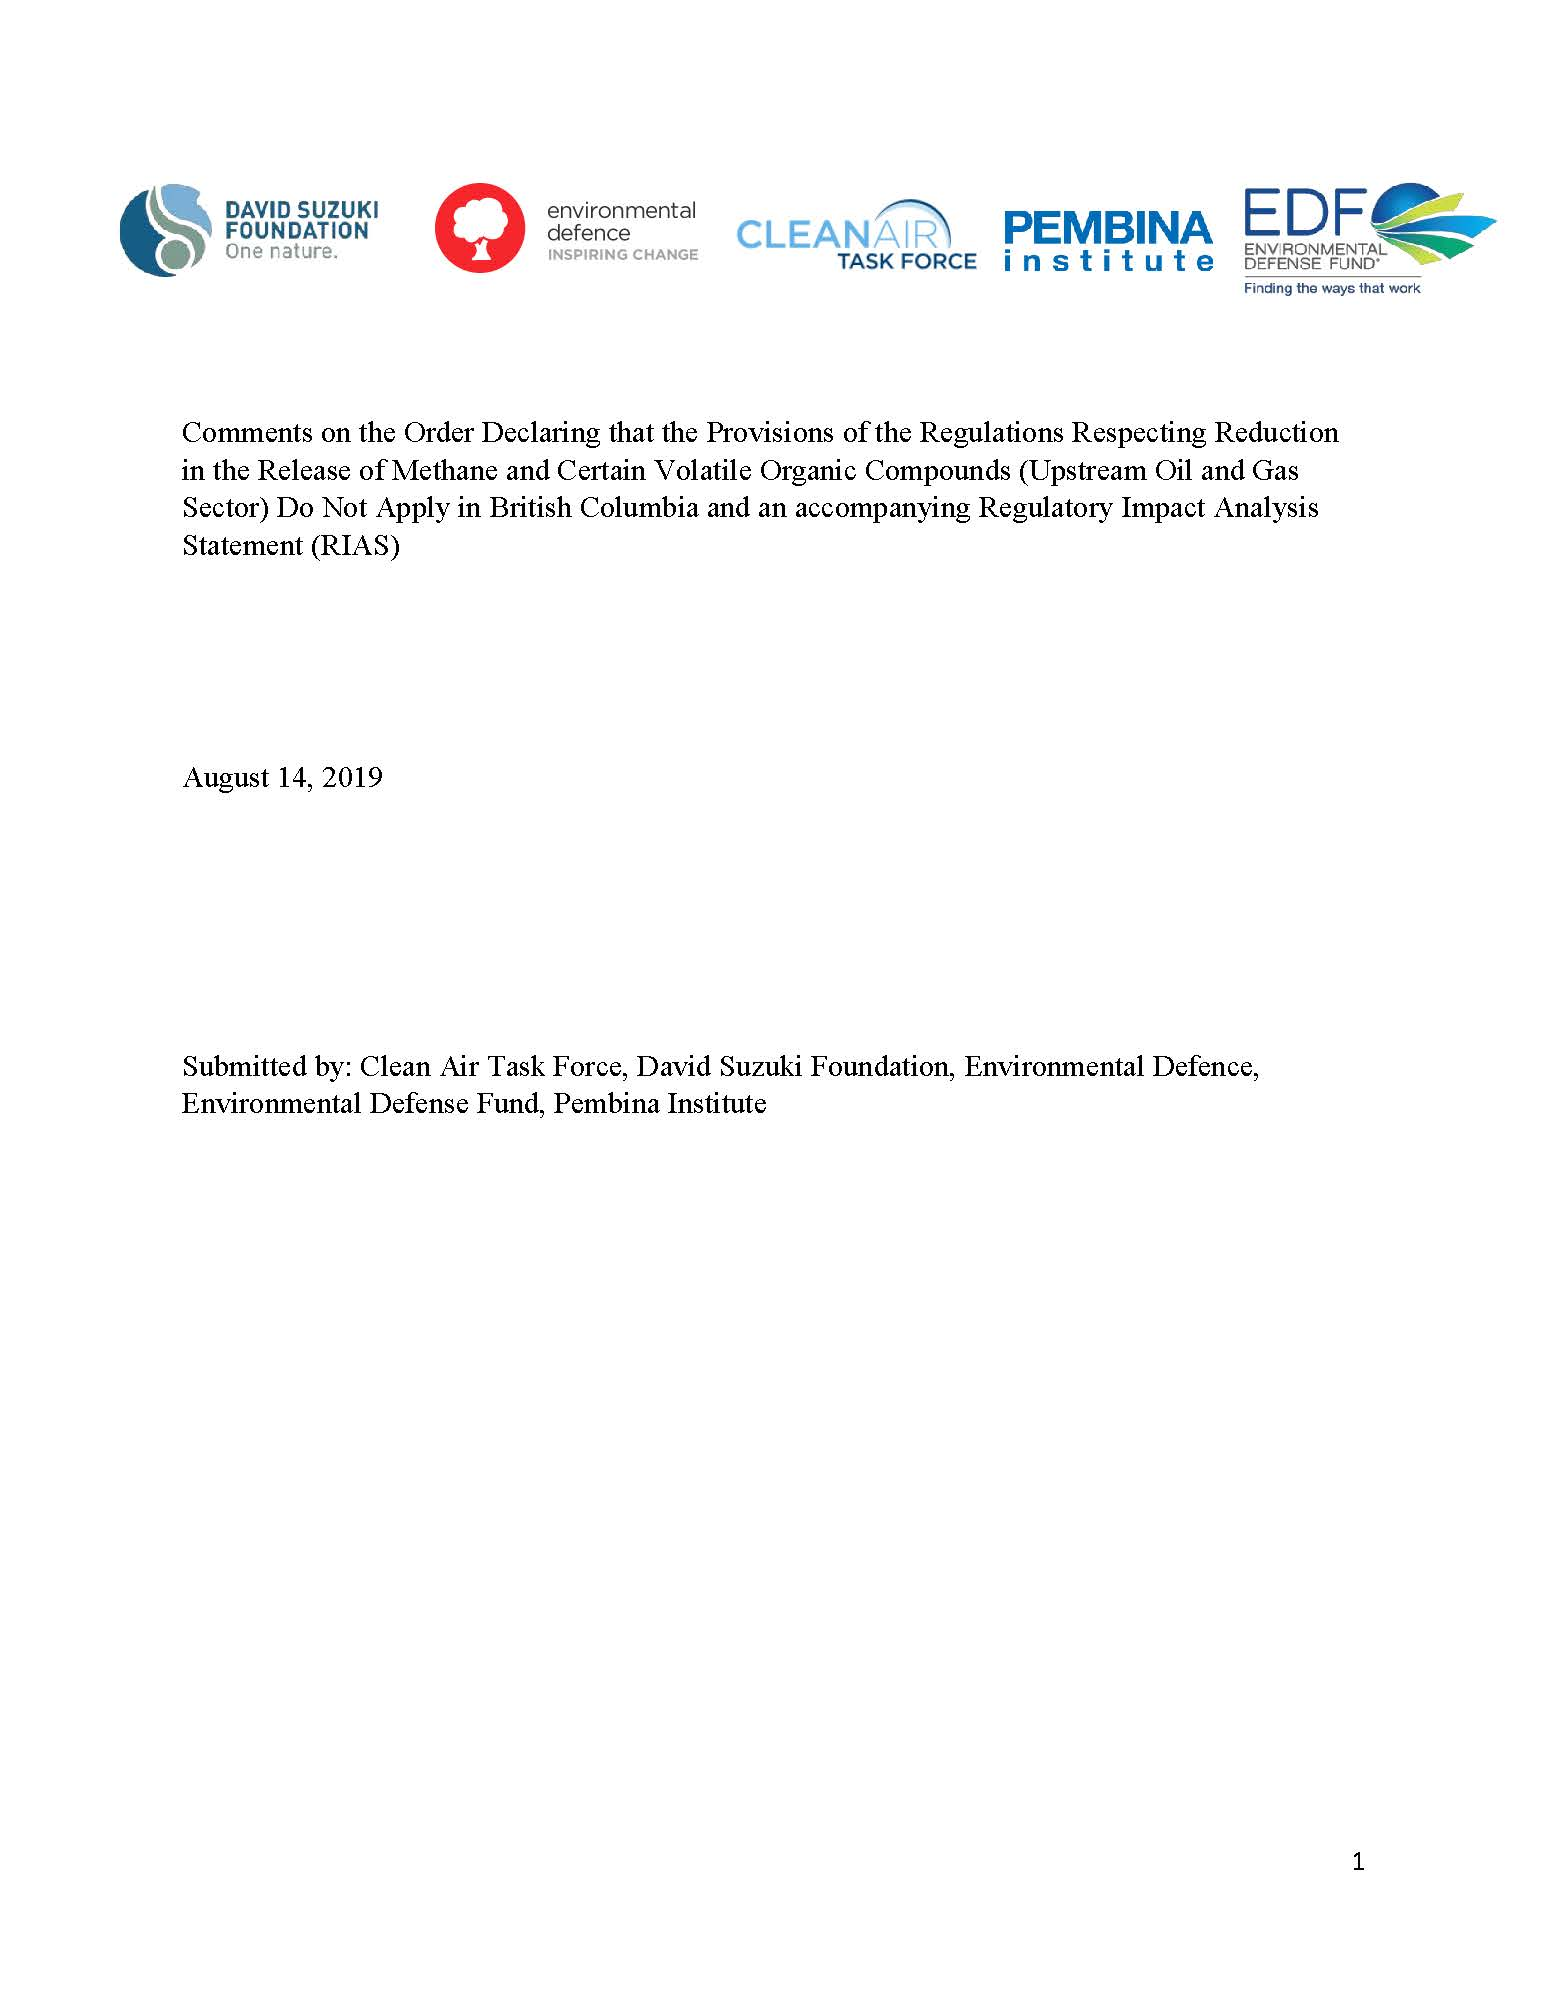 Cover of NGO comments on proposed methane equivalency agreement with BC